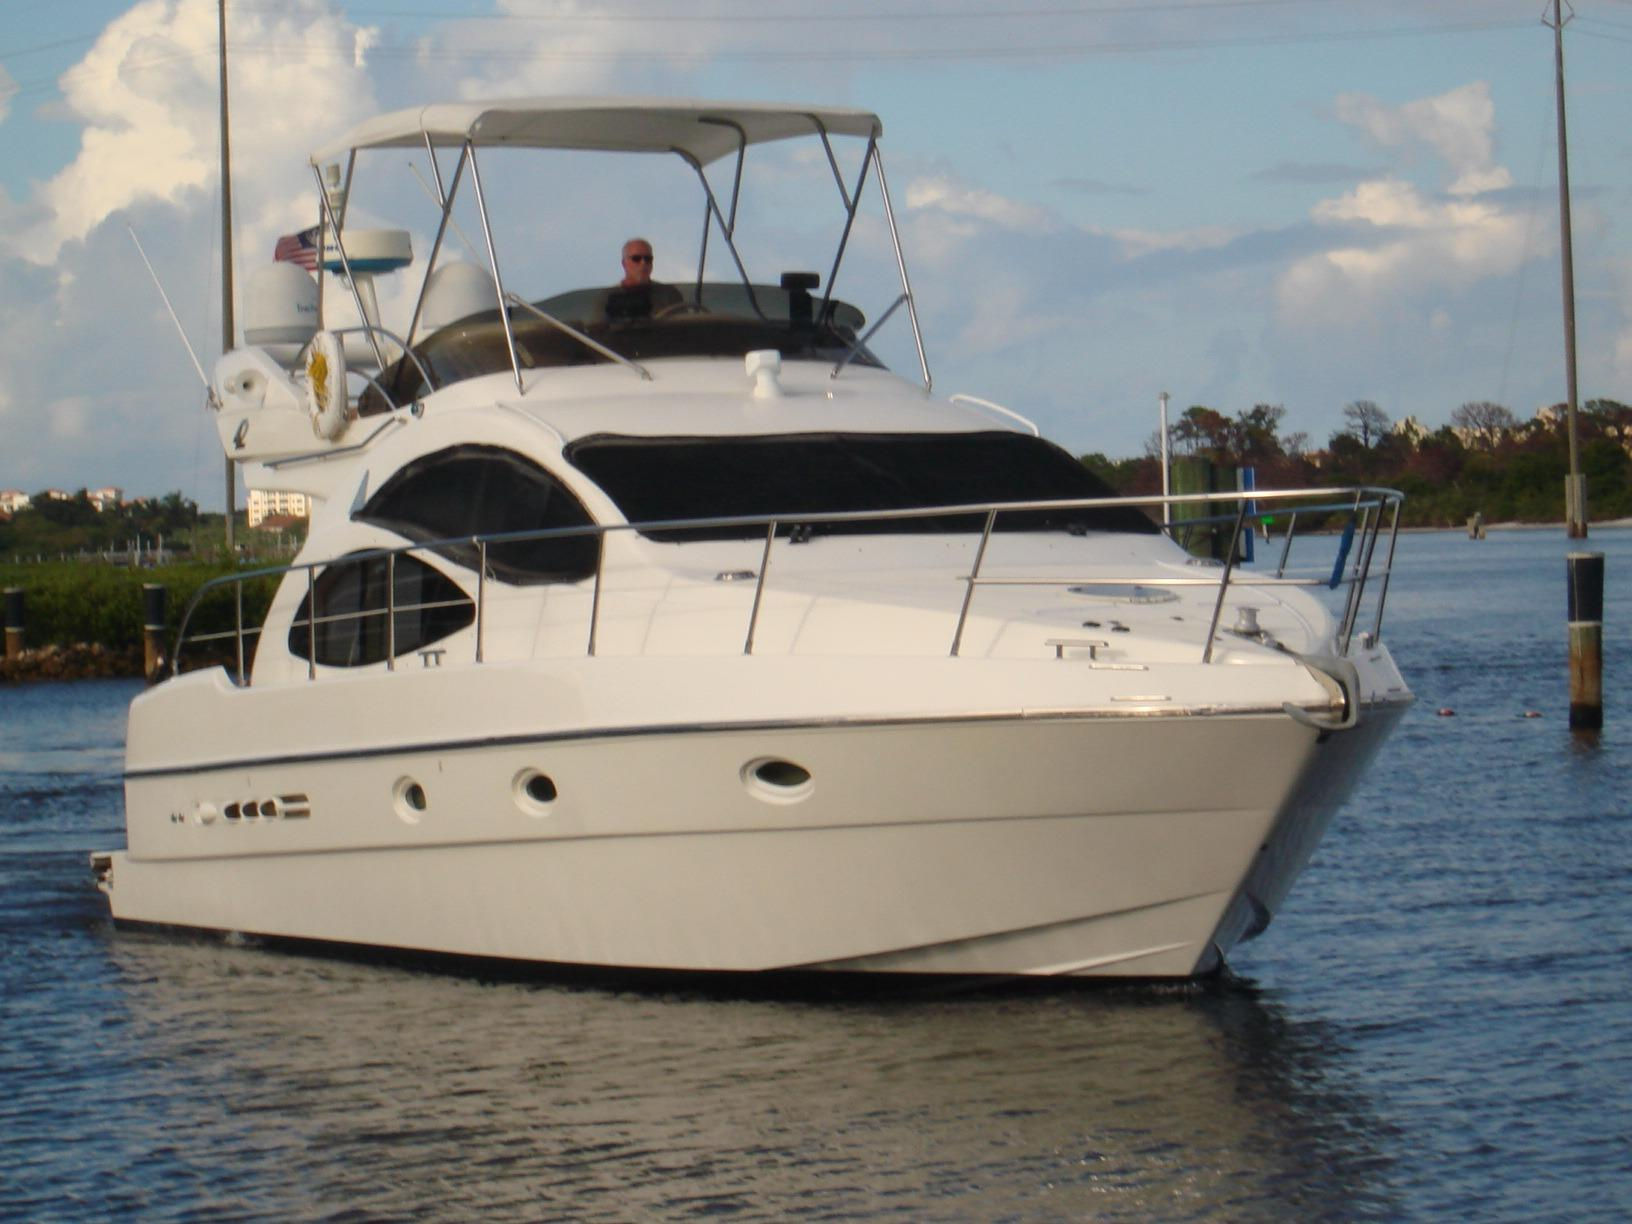 42 azimut 42 motor yacht 2001 for sale in west palm beach for Palm beach motor yachts for sale